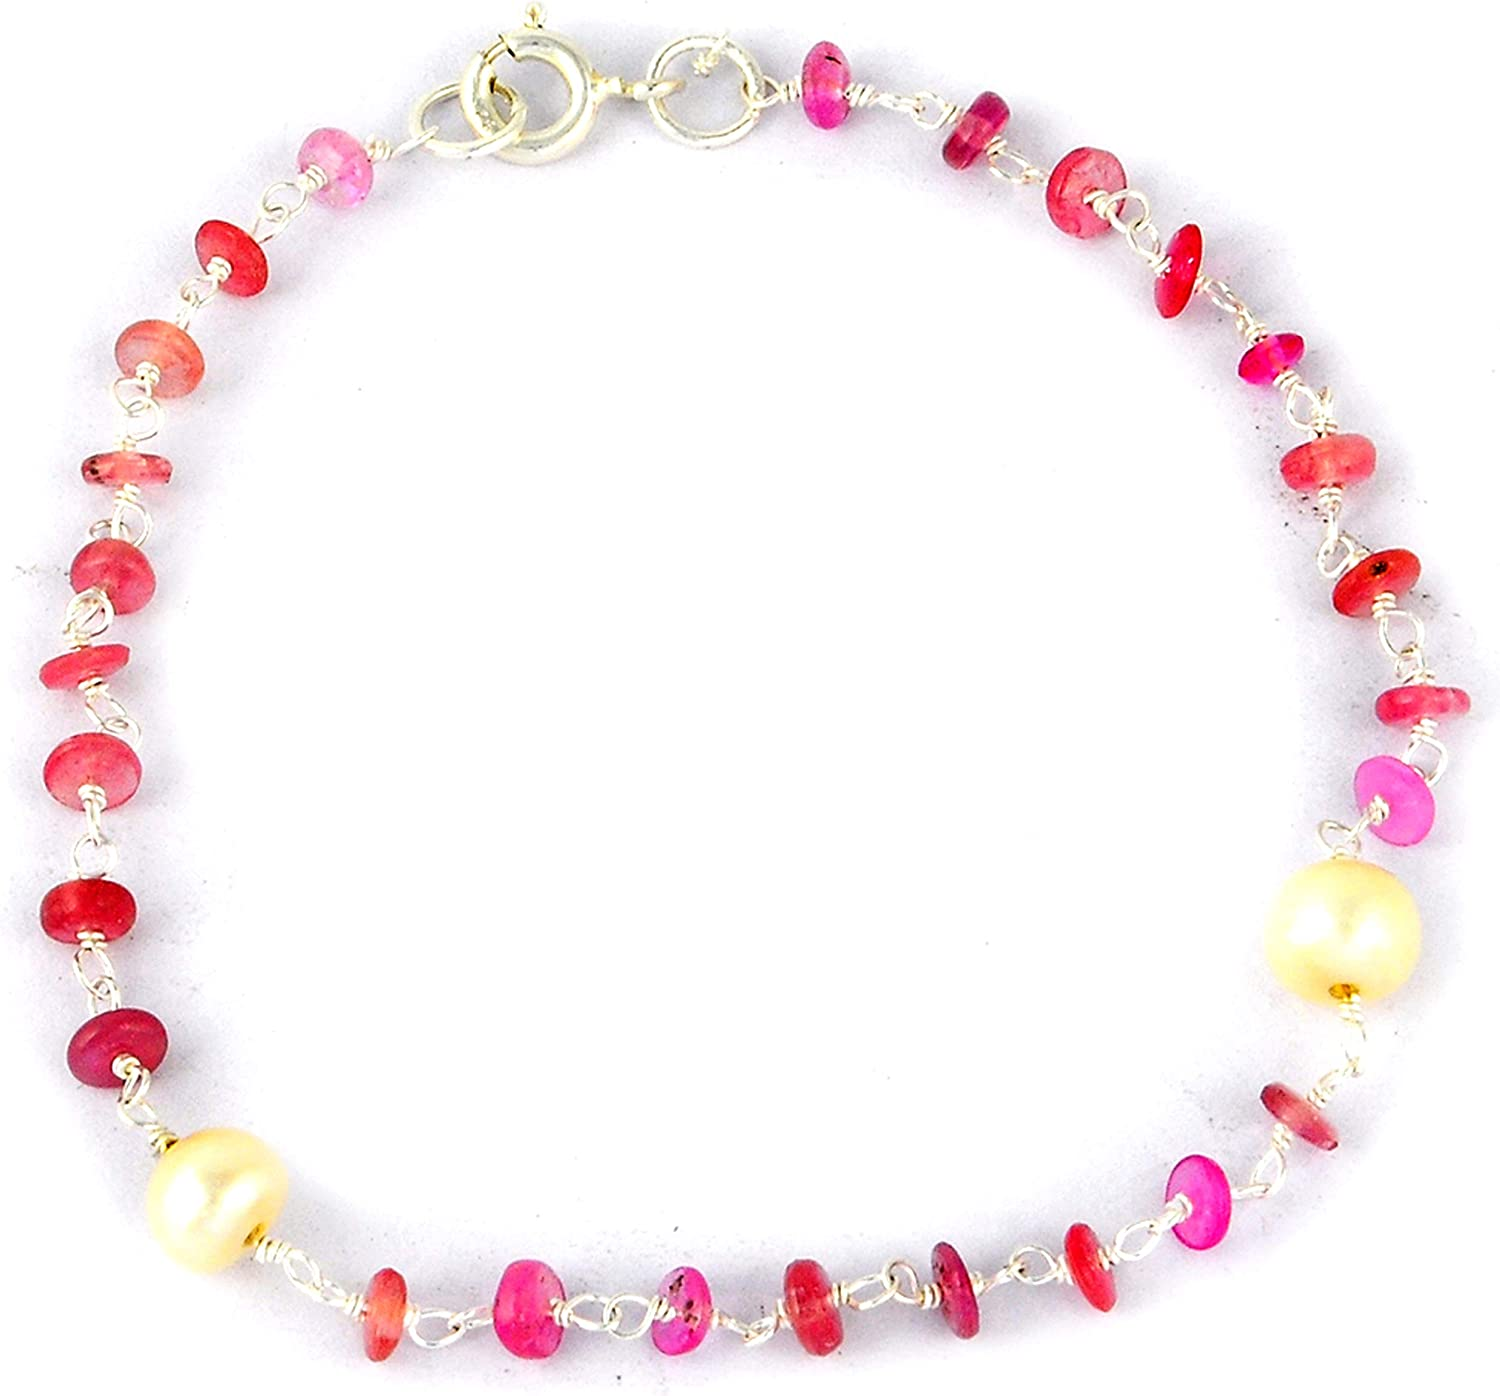 Orchid Jewelry Sterling Silver Cheap bargain Bracelet Se Ranking integrated 1st place Hypoallergenic Beaded